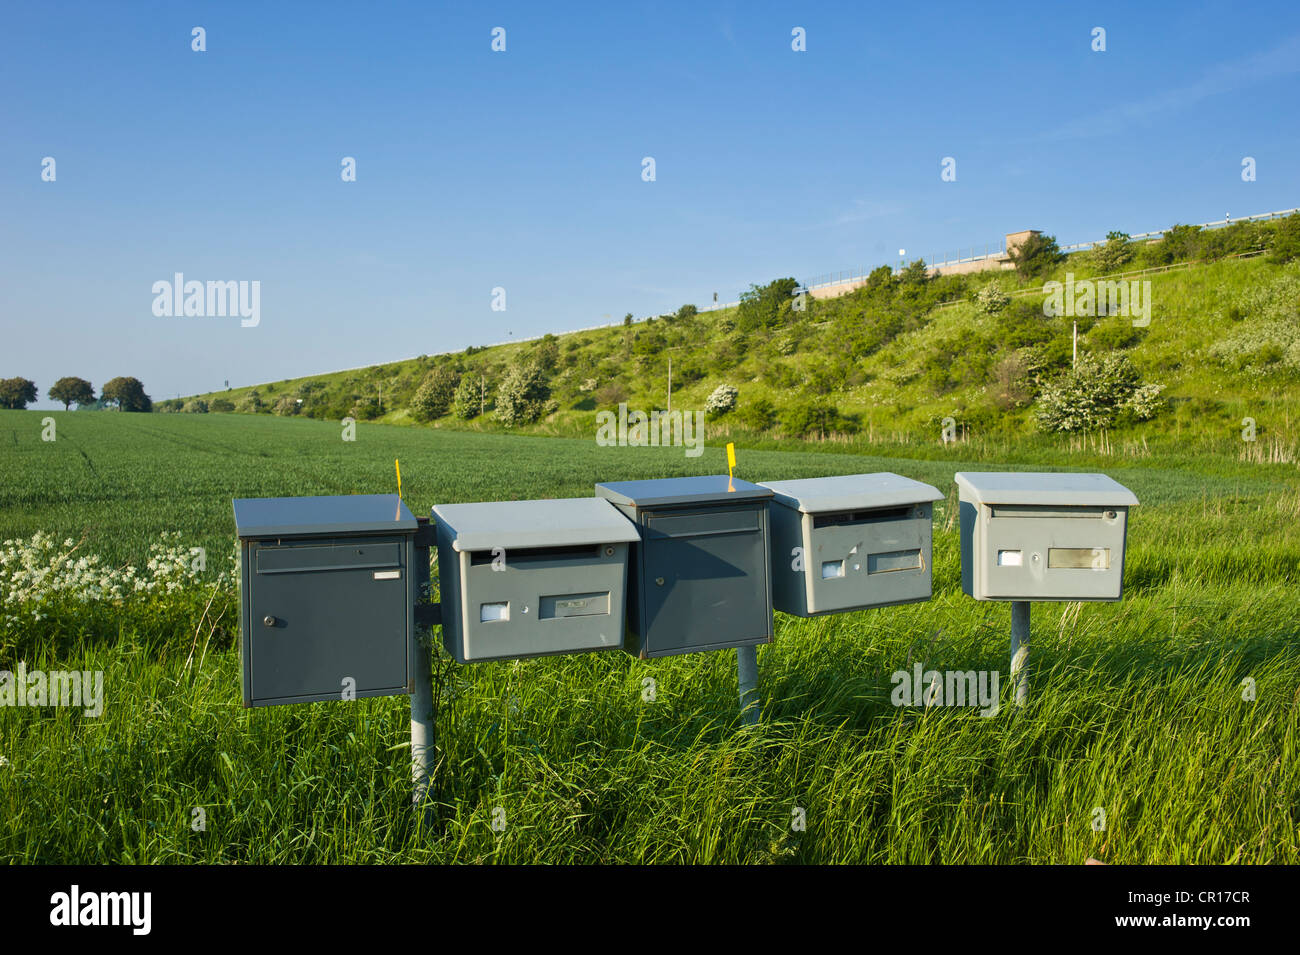 Letter boxes in the middle of a field, Strukkamphuk, Fehmarn island, Baltic Sea, Schleswig-Holstein, Germany, Europe - Stock Image